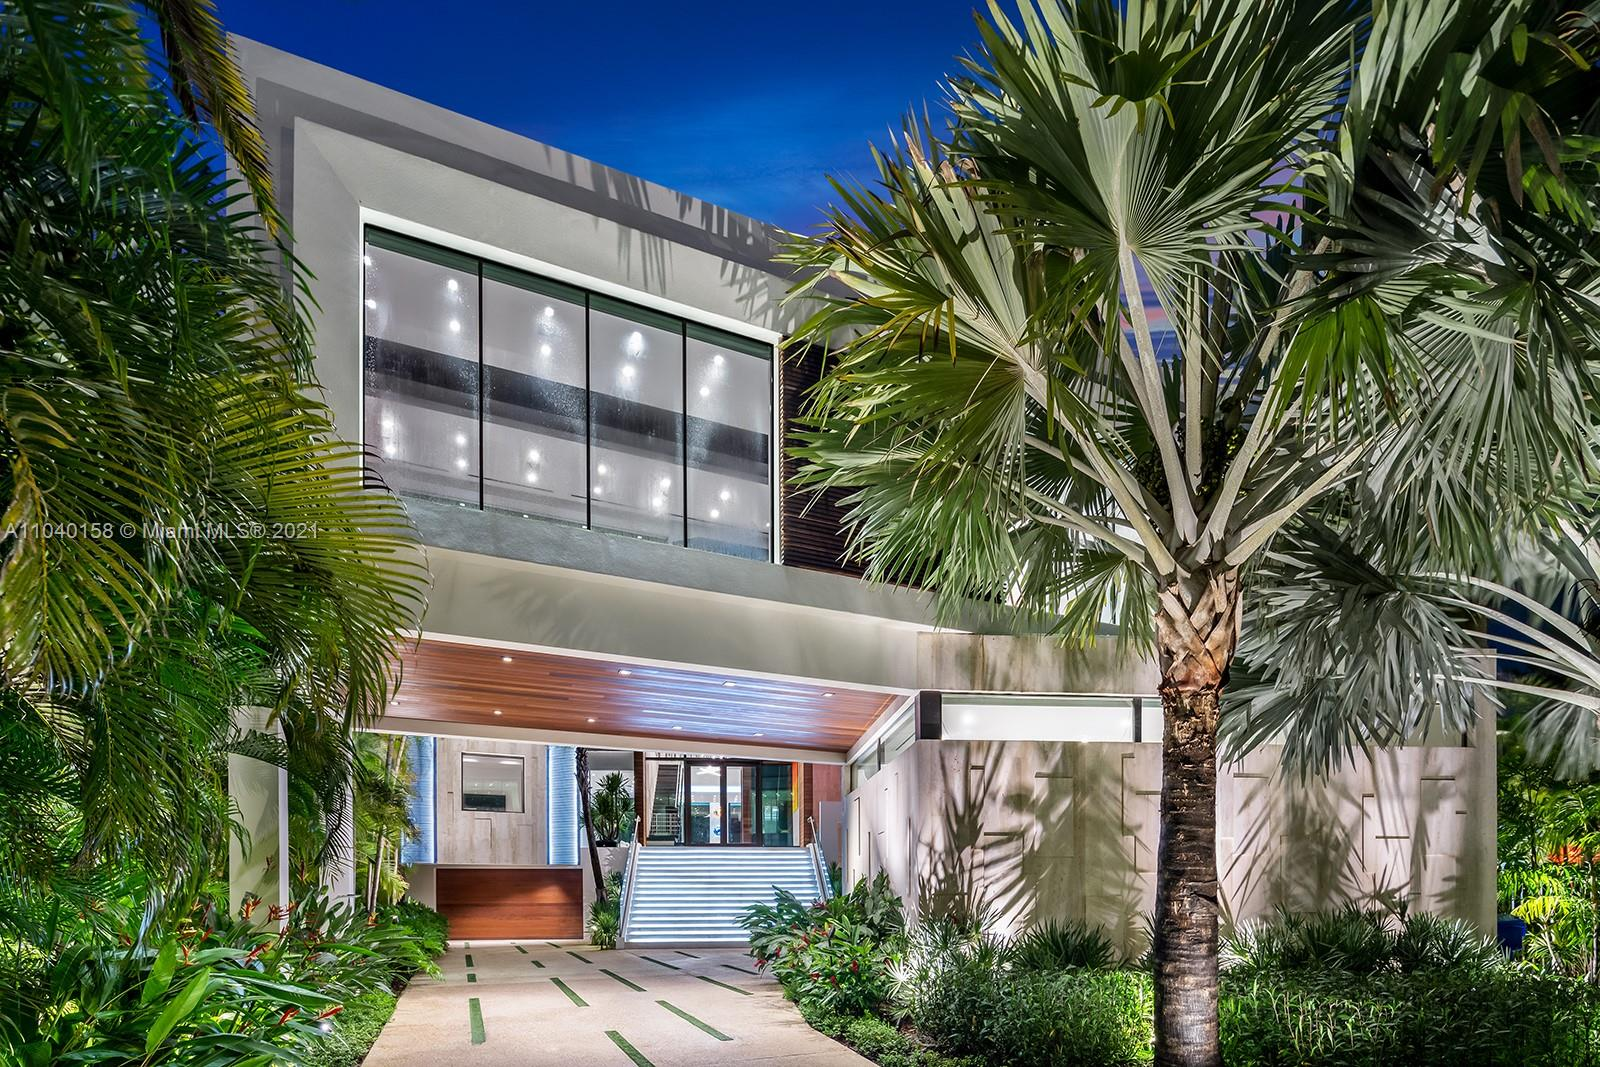 Professionally Designed Contemporary 3-story home w/stunning Bay views & over 100' of linear waterfront.  Located on Belle Meade Island, with 24/7 security. New construction (12,200 Total A/C SF) w/custom ultra-luxury finishes-no expense & attention to detail has been spared. Floor to ceiling windows, 35 KM solar system+6 Tesla power walls. Italian kitchen by Veneta Cucine, Seven A/C units, Travertine exterior walls, beautiful glass elevator, custom lighting & sound system throughout. Art Gallery and oversized Office/Library. Large covered Patio & Summer Kitchen w/water views.  50 FT infinity edge pool, solar generator, deep water large Dock & Boat lift. Unique 12 car Garage on the ground floor. Real Sellers. Centrally located & minutes to Design District, Miami Beach & downtown Miami.